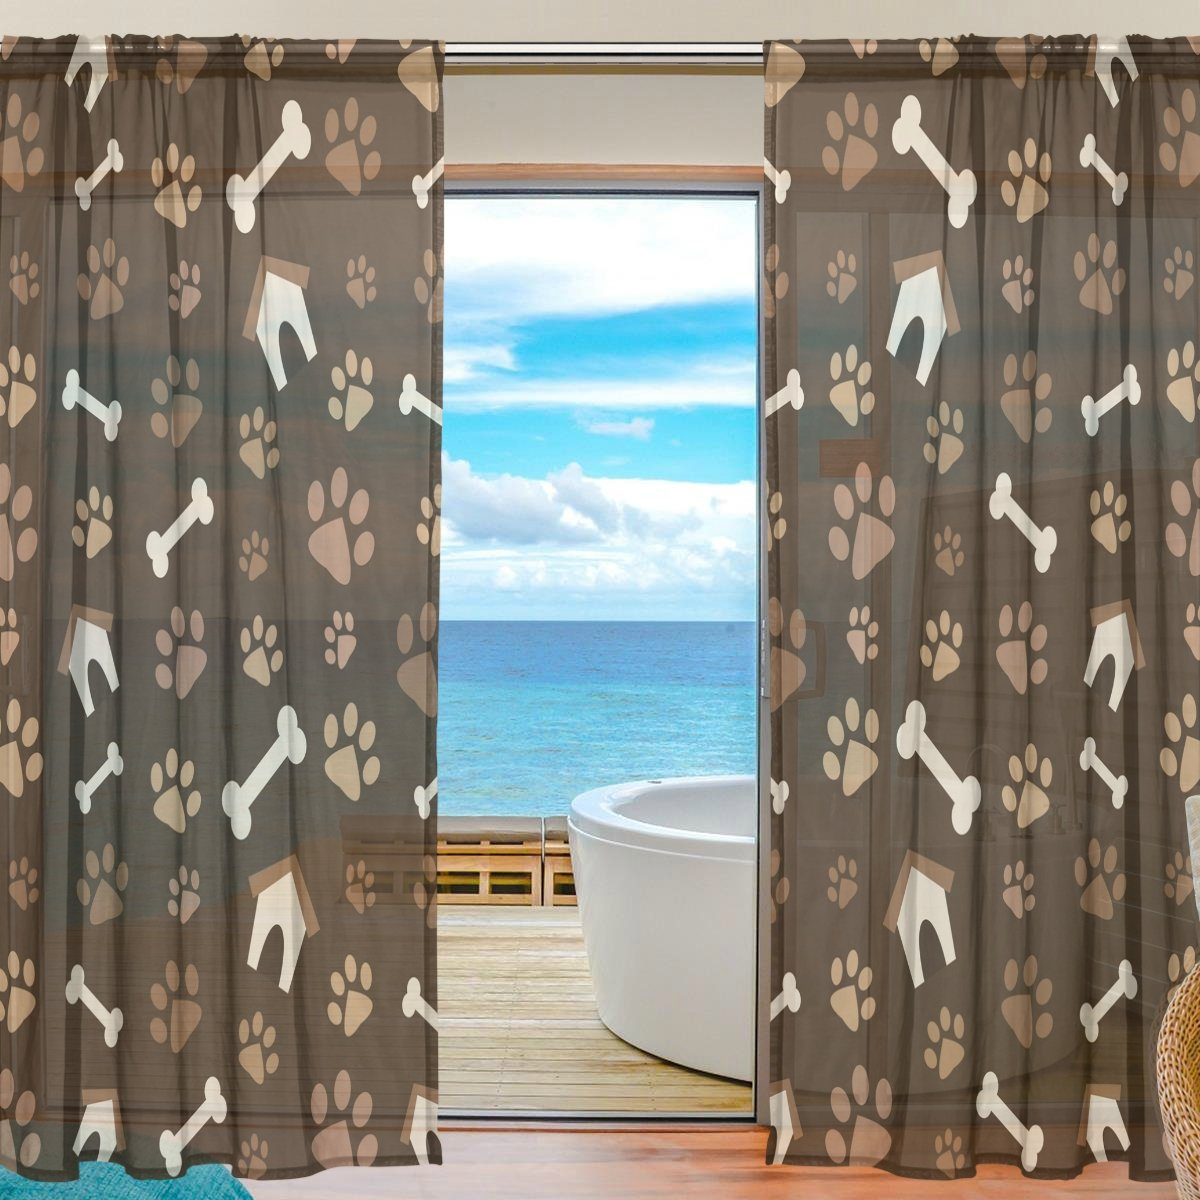 SEULIFE Window Sheer Curtain, Animal Dog Paw Prints Bones House Voile Curtain Drapes for Door Kitchen Living Room Bedroom 55x78 inches 2 Panels g3911313p112c126s167